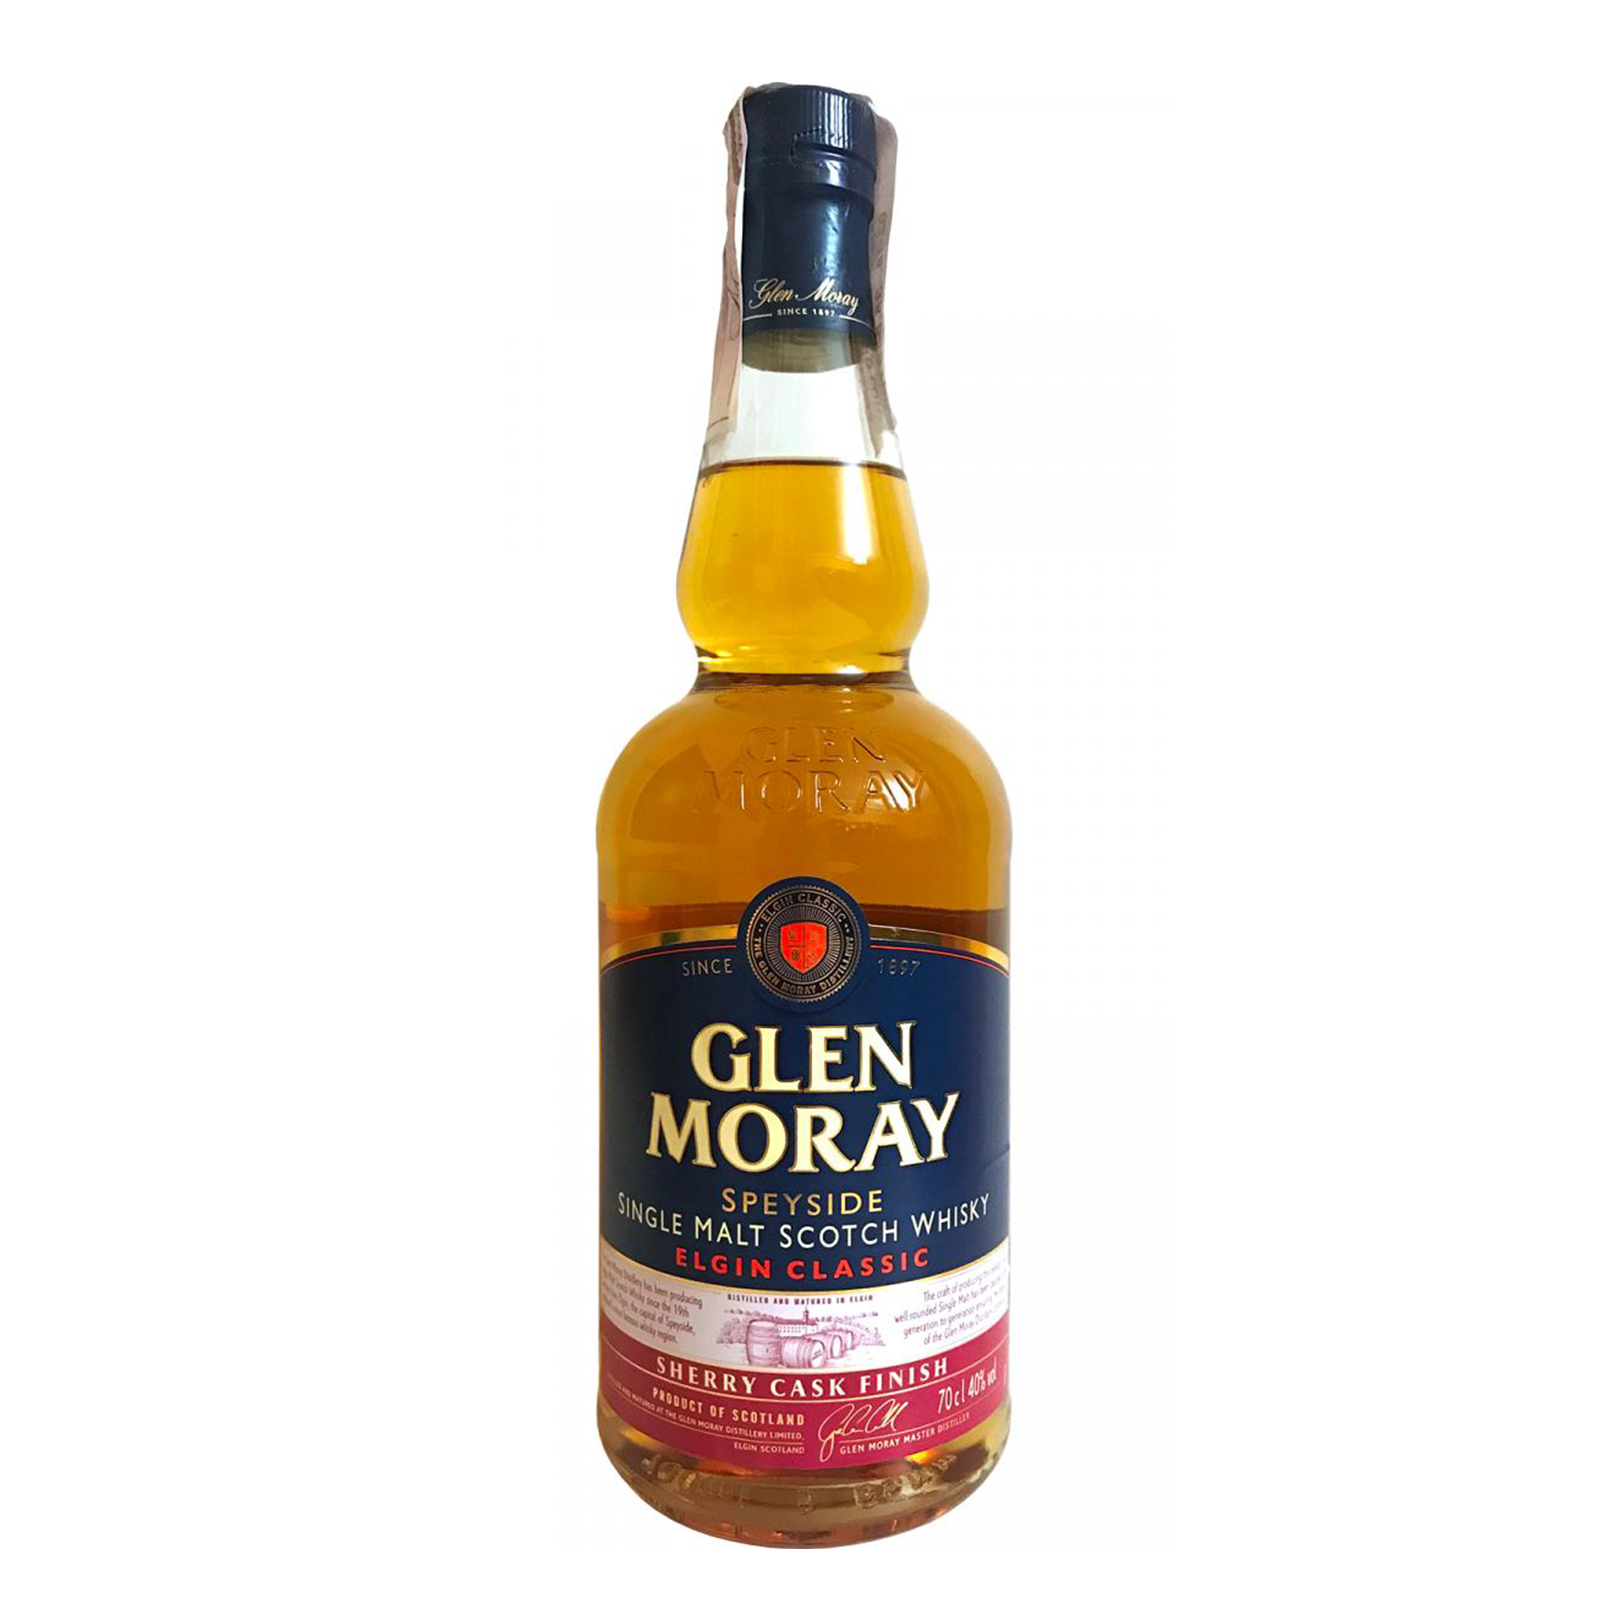 Glen Moray – Sherry Cask Finish